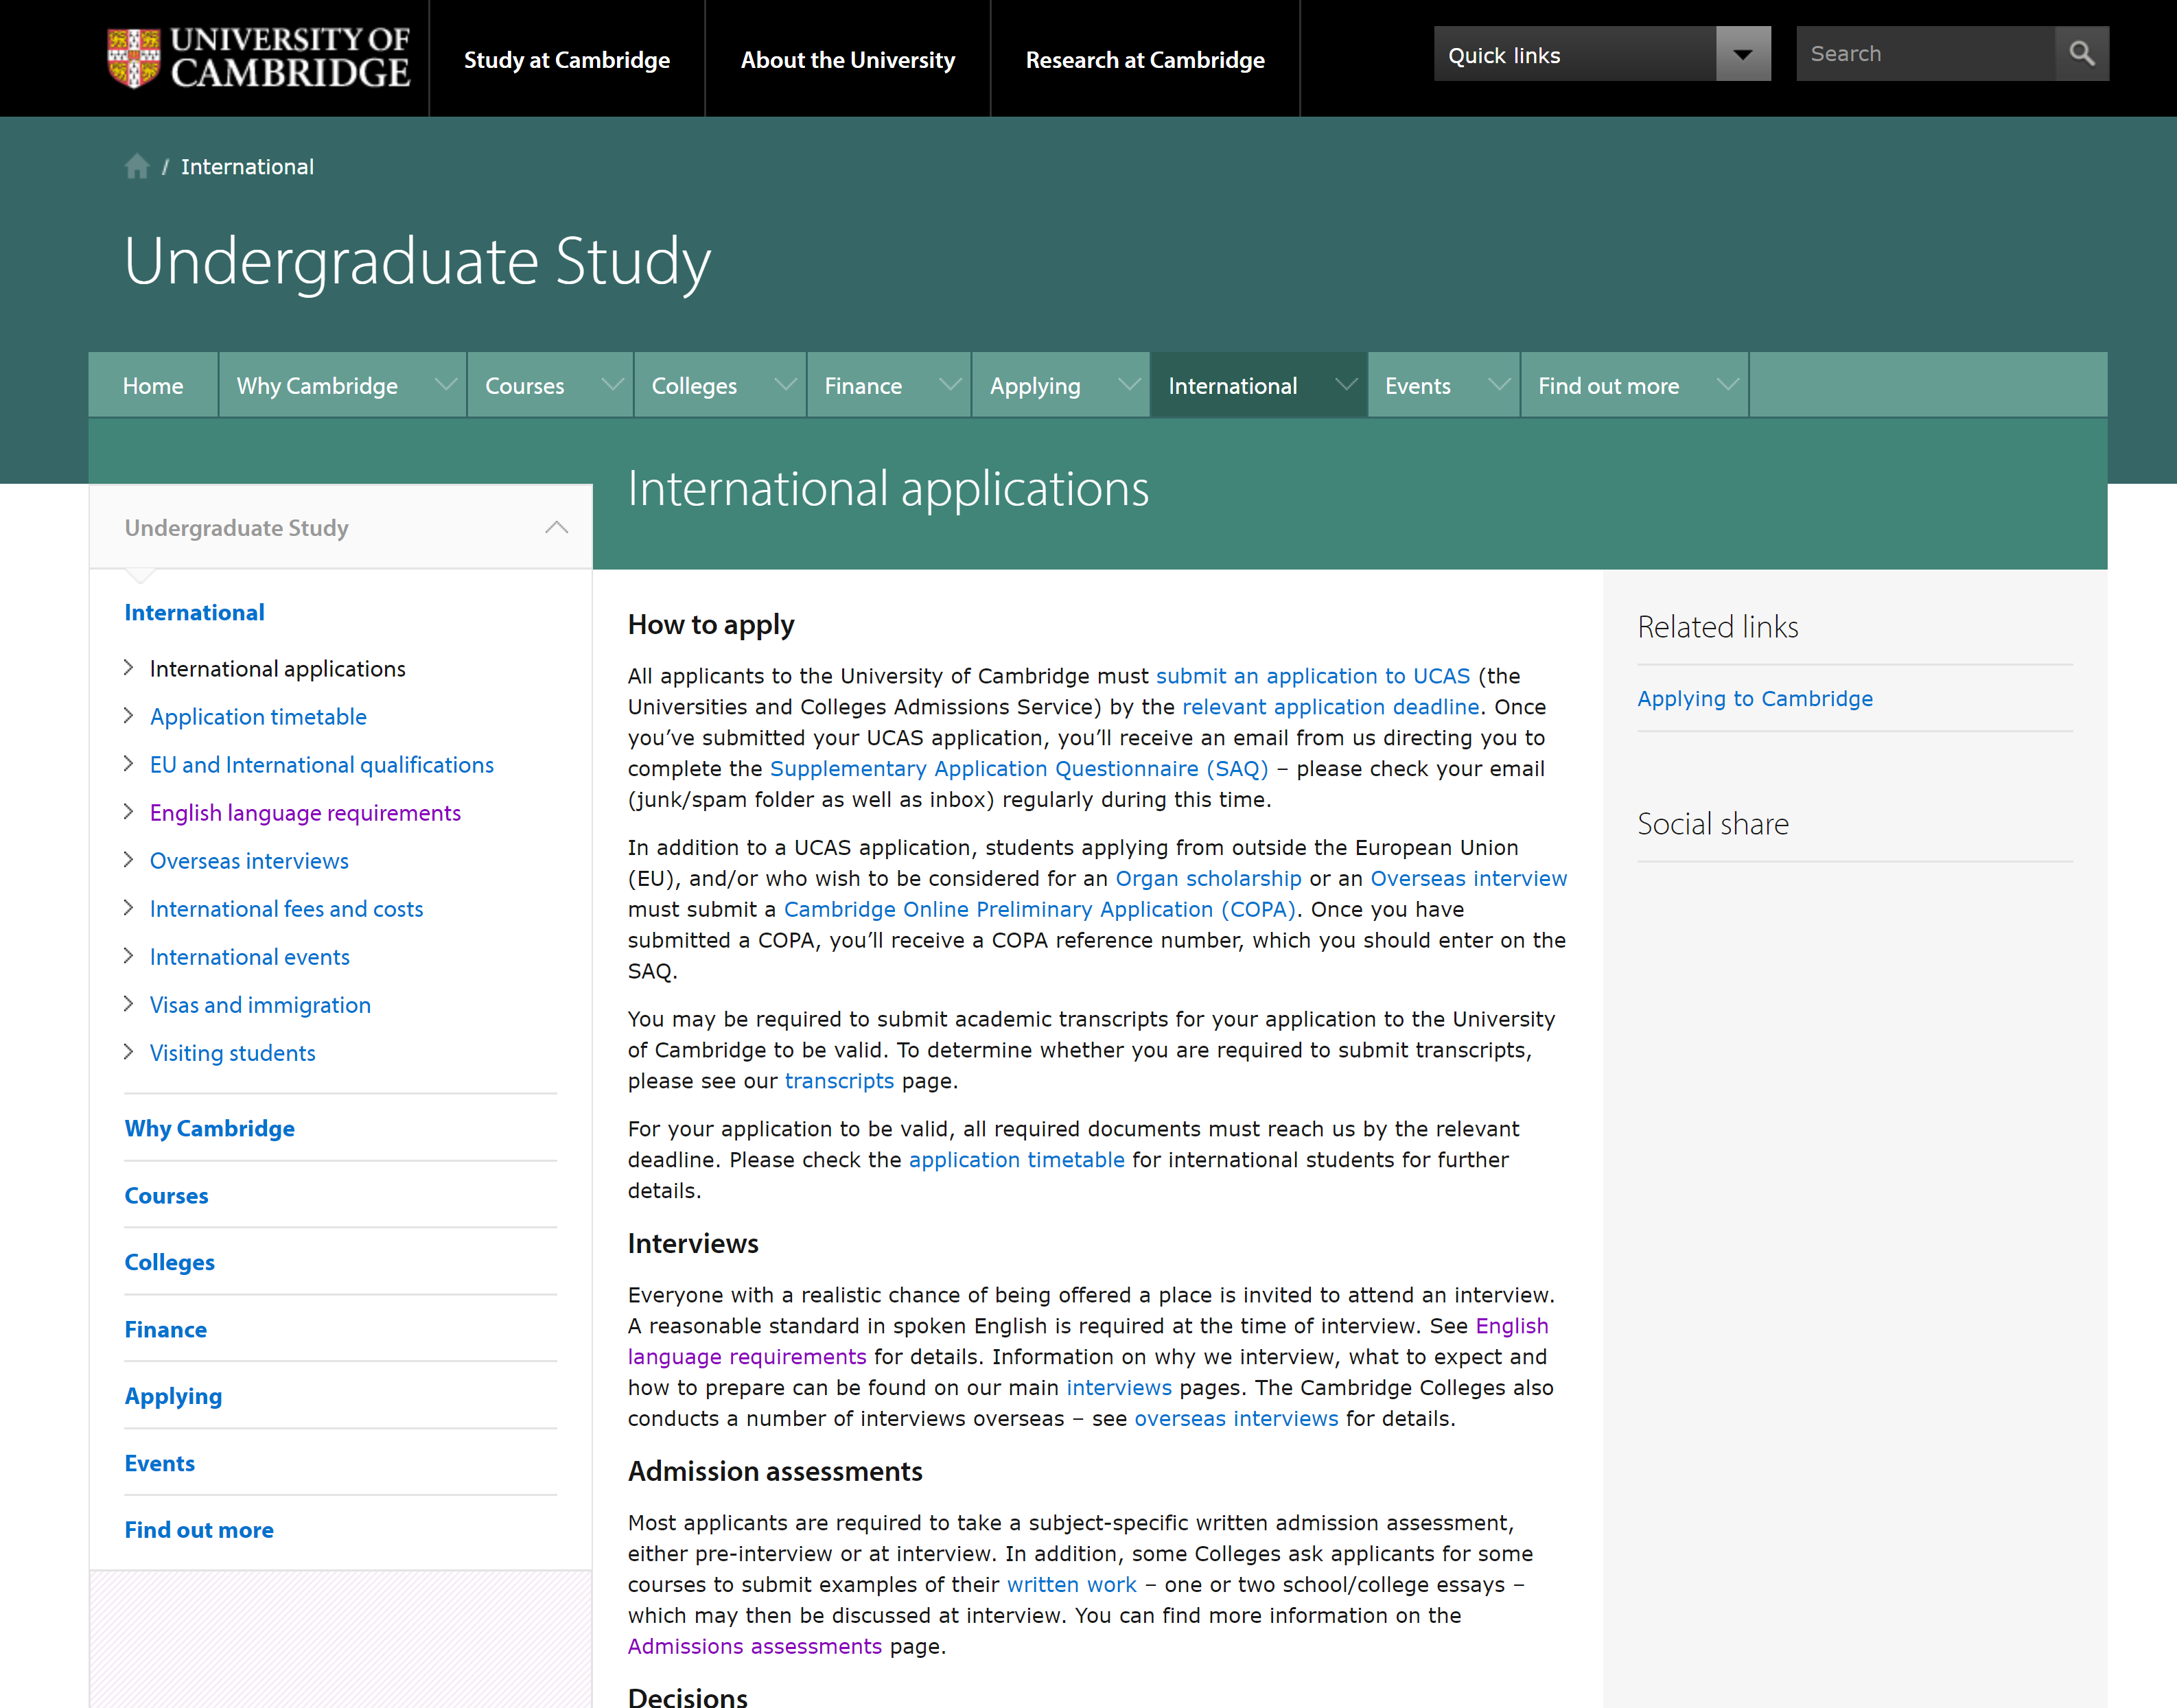 Cambridge website